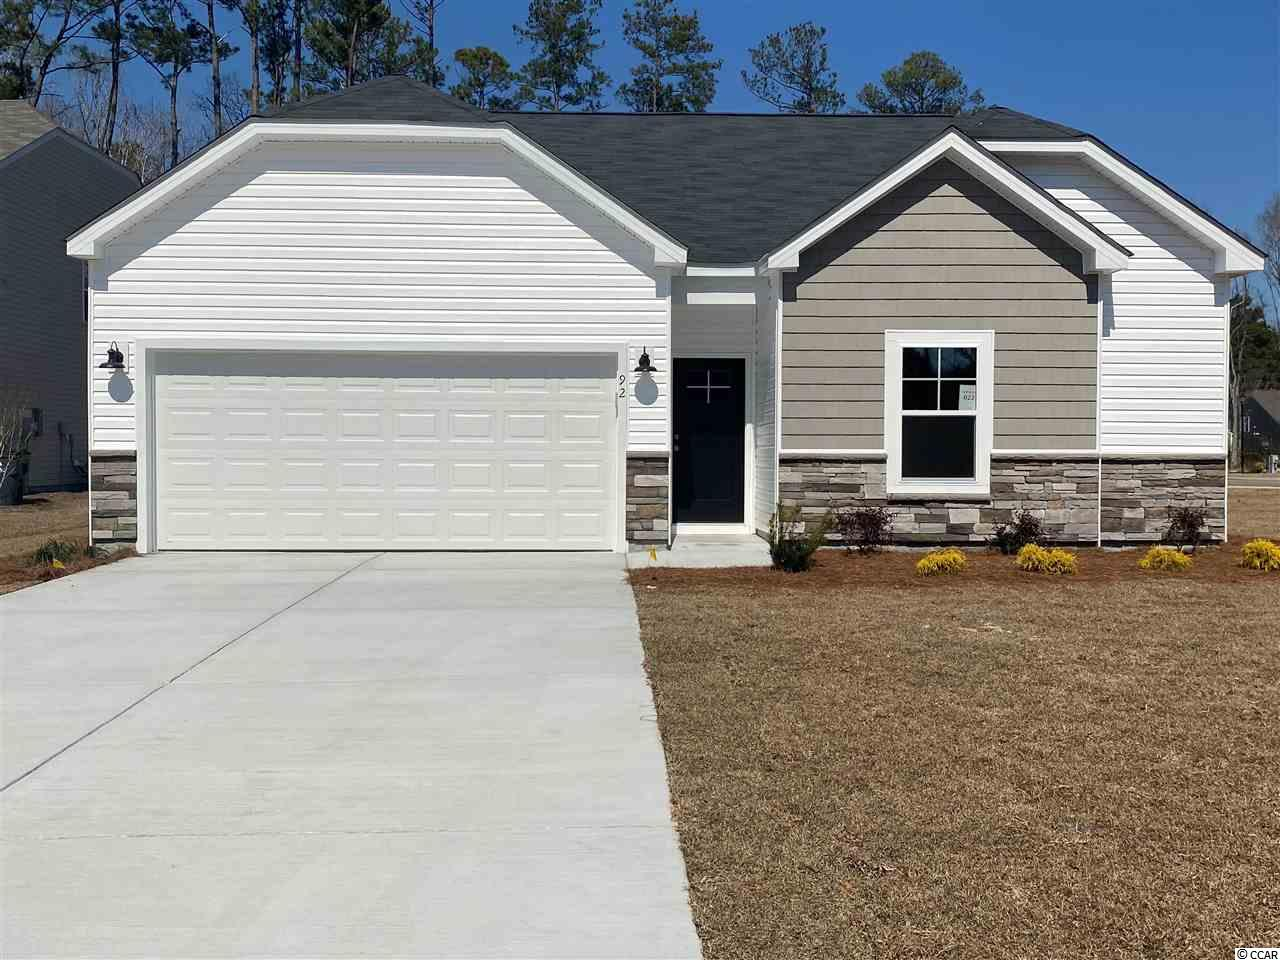 """This is the Patriot plan in the sought after community of Pawleys Cove, options and upgrades will vary as built. Pawleys Island is a famous seaside historic town known for it's carefree and laid back style with unspoiled beaches, eclectic dining, and challenging world-class golf gourses galore!  There's also great amenities close by to enjoy like bike trails, community parks, natural gardens, and local creeks for crabbing and fishing.  Pawleys Cove will be a great place to make your memories happen.  This is the """"Patriot"""" plan and this home is ready to move in!!  It features an open concept family, dining and kitchen area and the laundry room is just off of kitchen with a linen closet.  Great storage in this home with all bedrooms having walk-in closets!  It features gorgeous vinyl plank flooring throughout main and wet areas as well as owners suite. The kitchen features """"Bisque"""" painted maple cabinets, granite, stainless upgraded appliances and a large entertaining island with gorgeous pendant lighting! The Owner's bath  features a large tile shower and double vanities with a linen closet.  All information is deemed reliable but not guaranteed.  Buyer is responsible for verification.  Some pictures in this listing are of a similar home and not the actual home and furniture is for staging purposes only."""